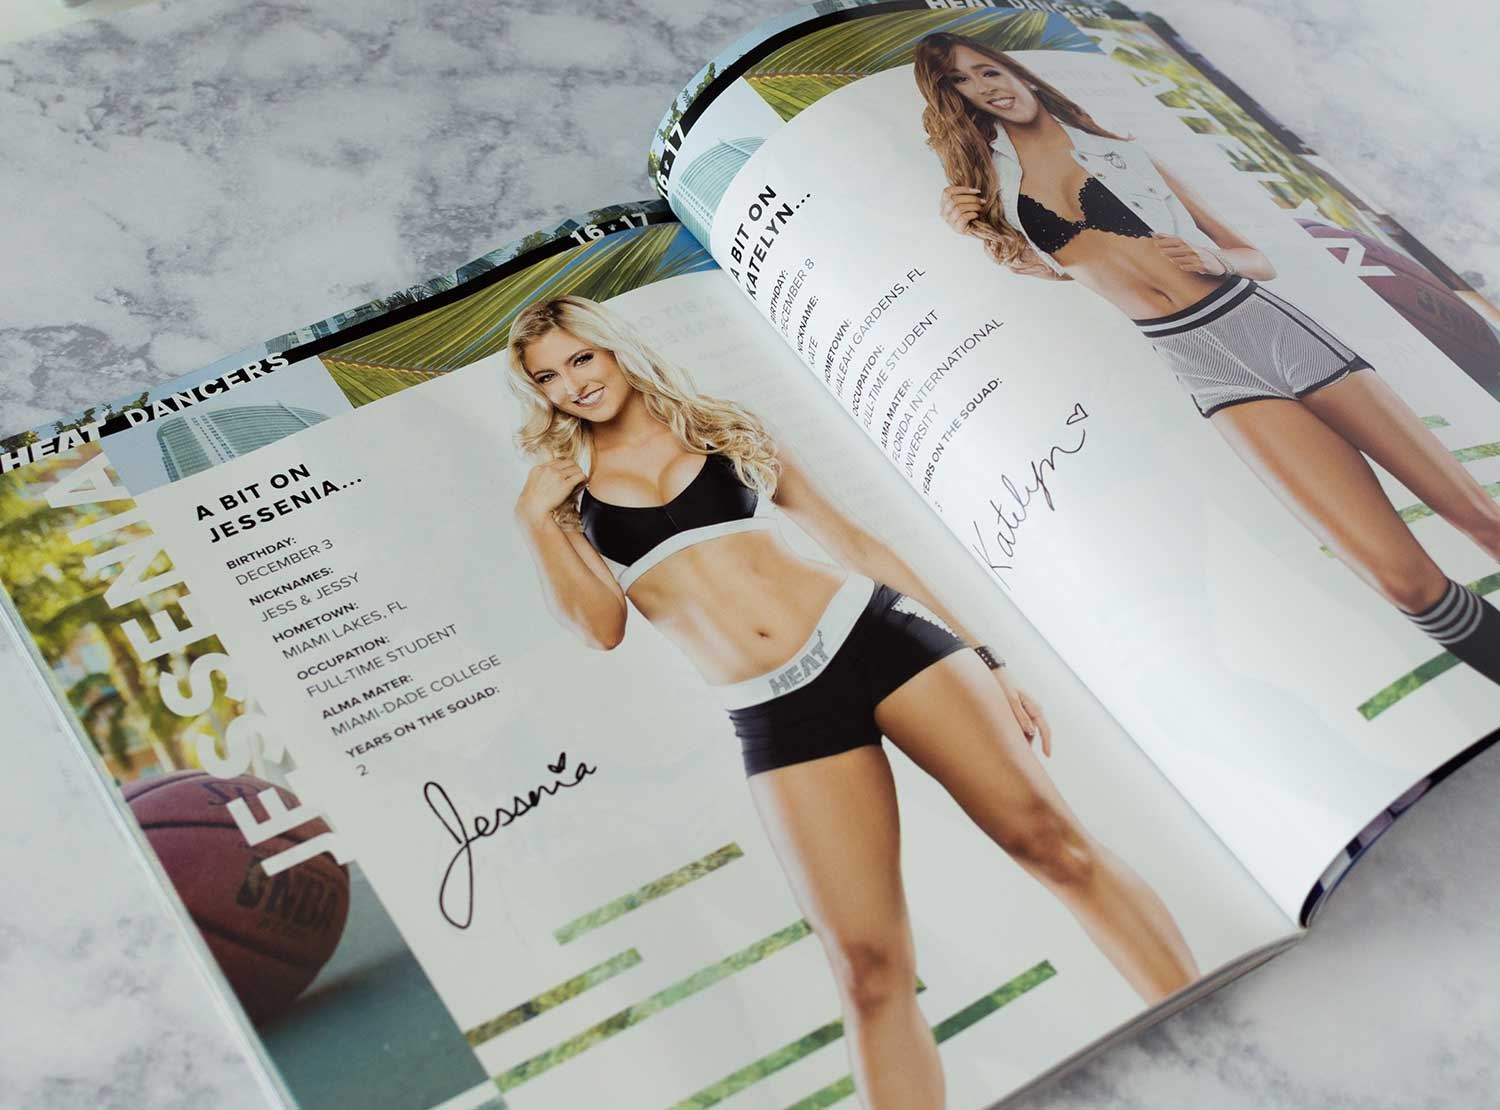 A dancer spread in the 2016-17 Miami Heat Yearbook.